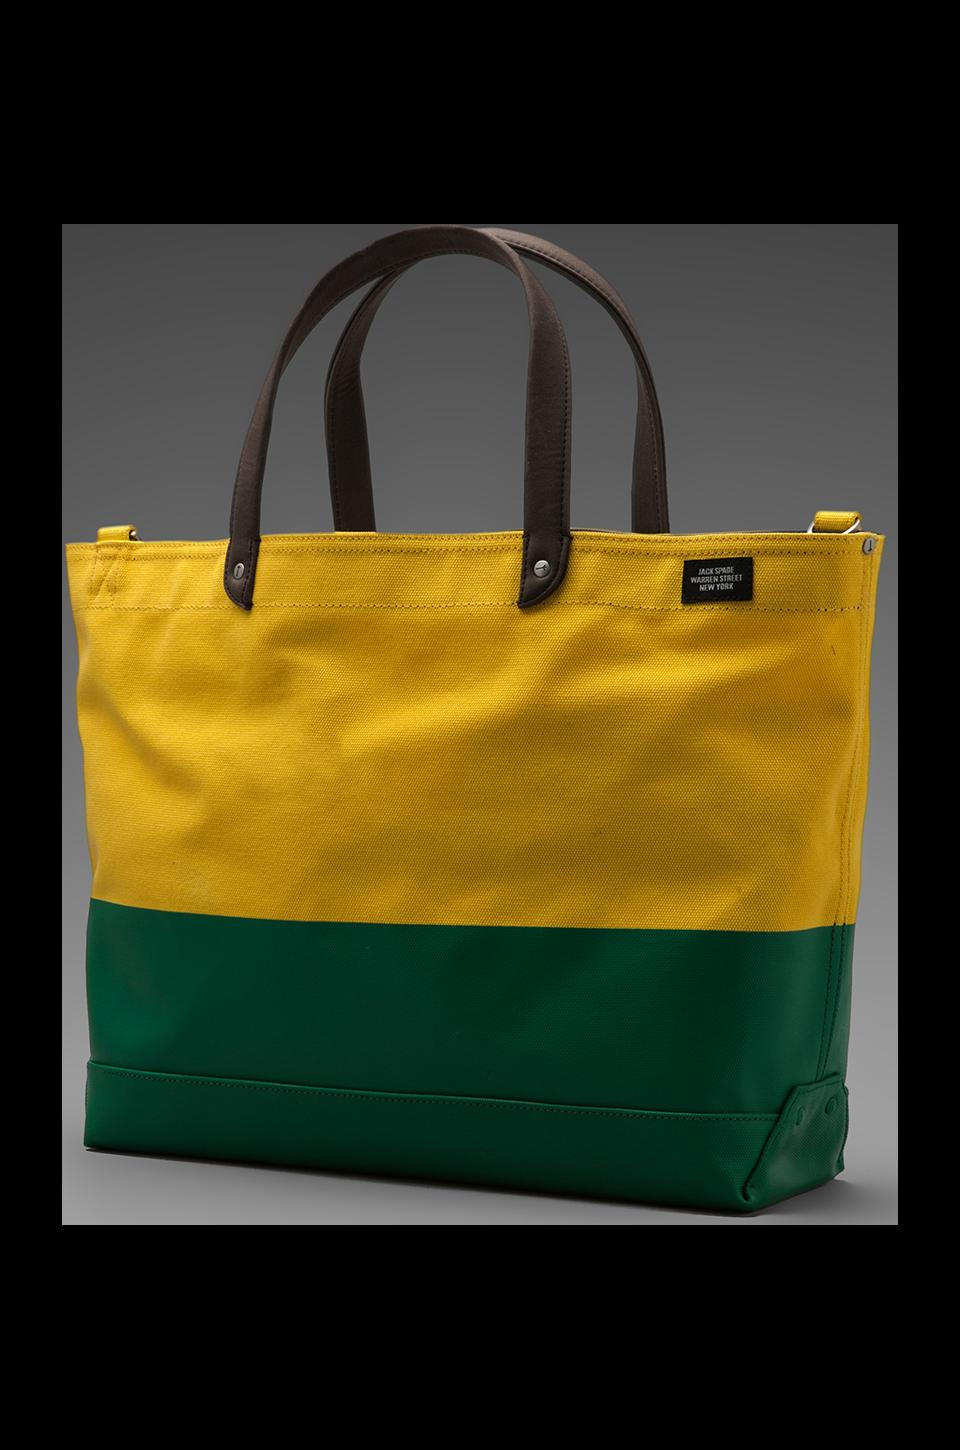 Jack Spade Dipped Industrial Coal Bag in Lemon/Fresh Green